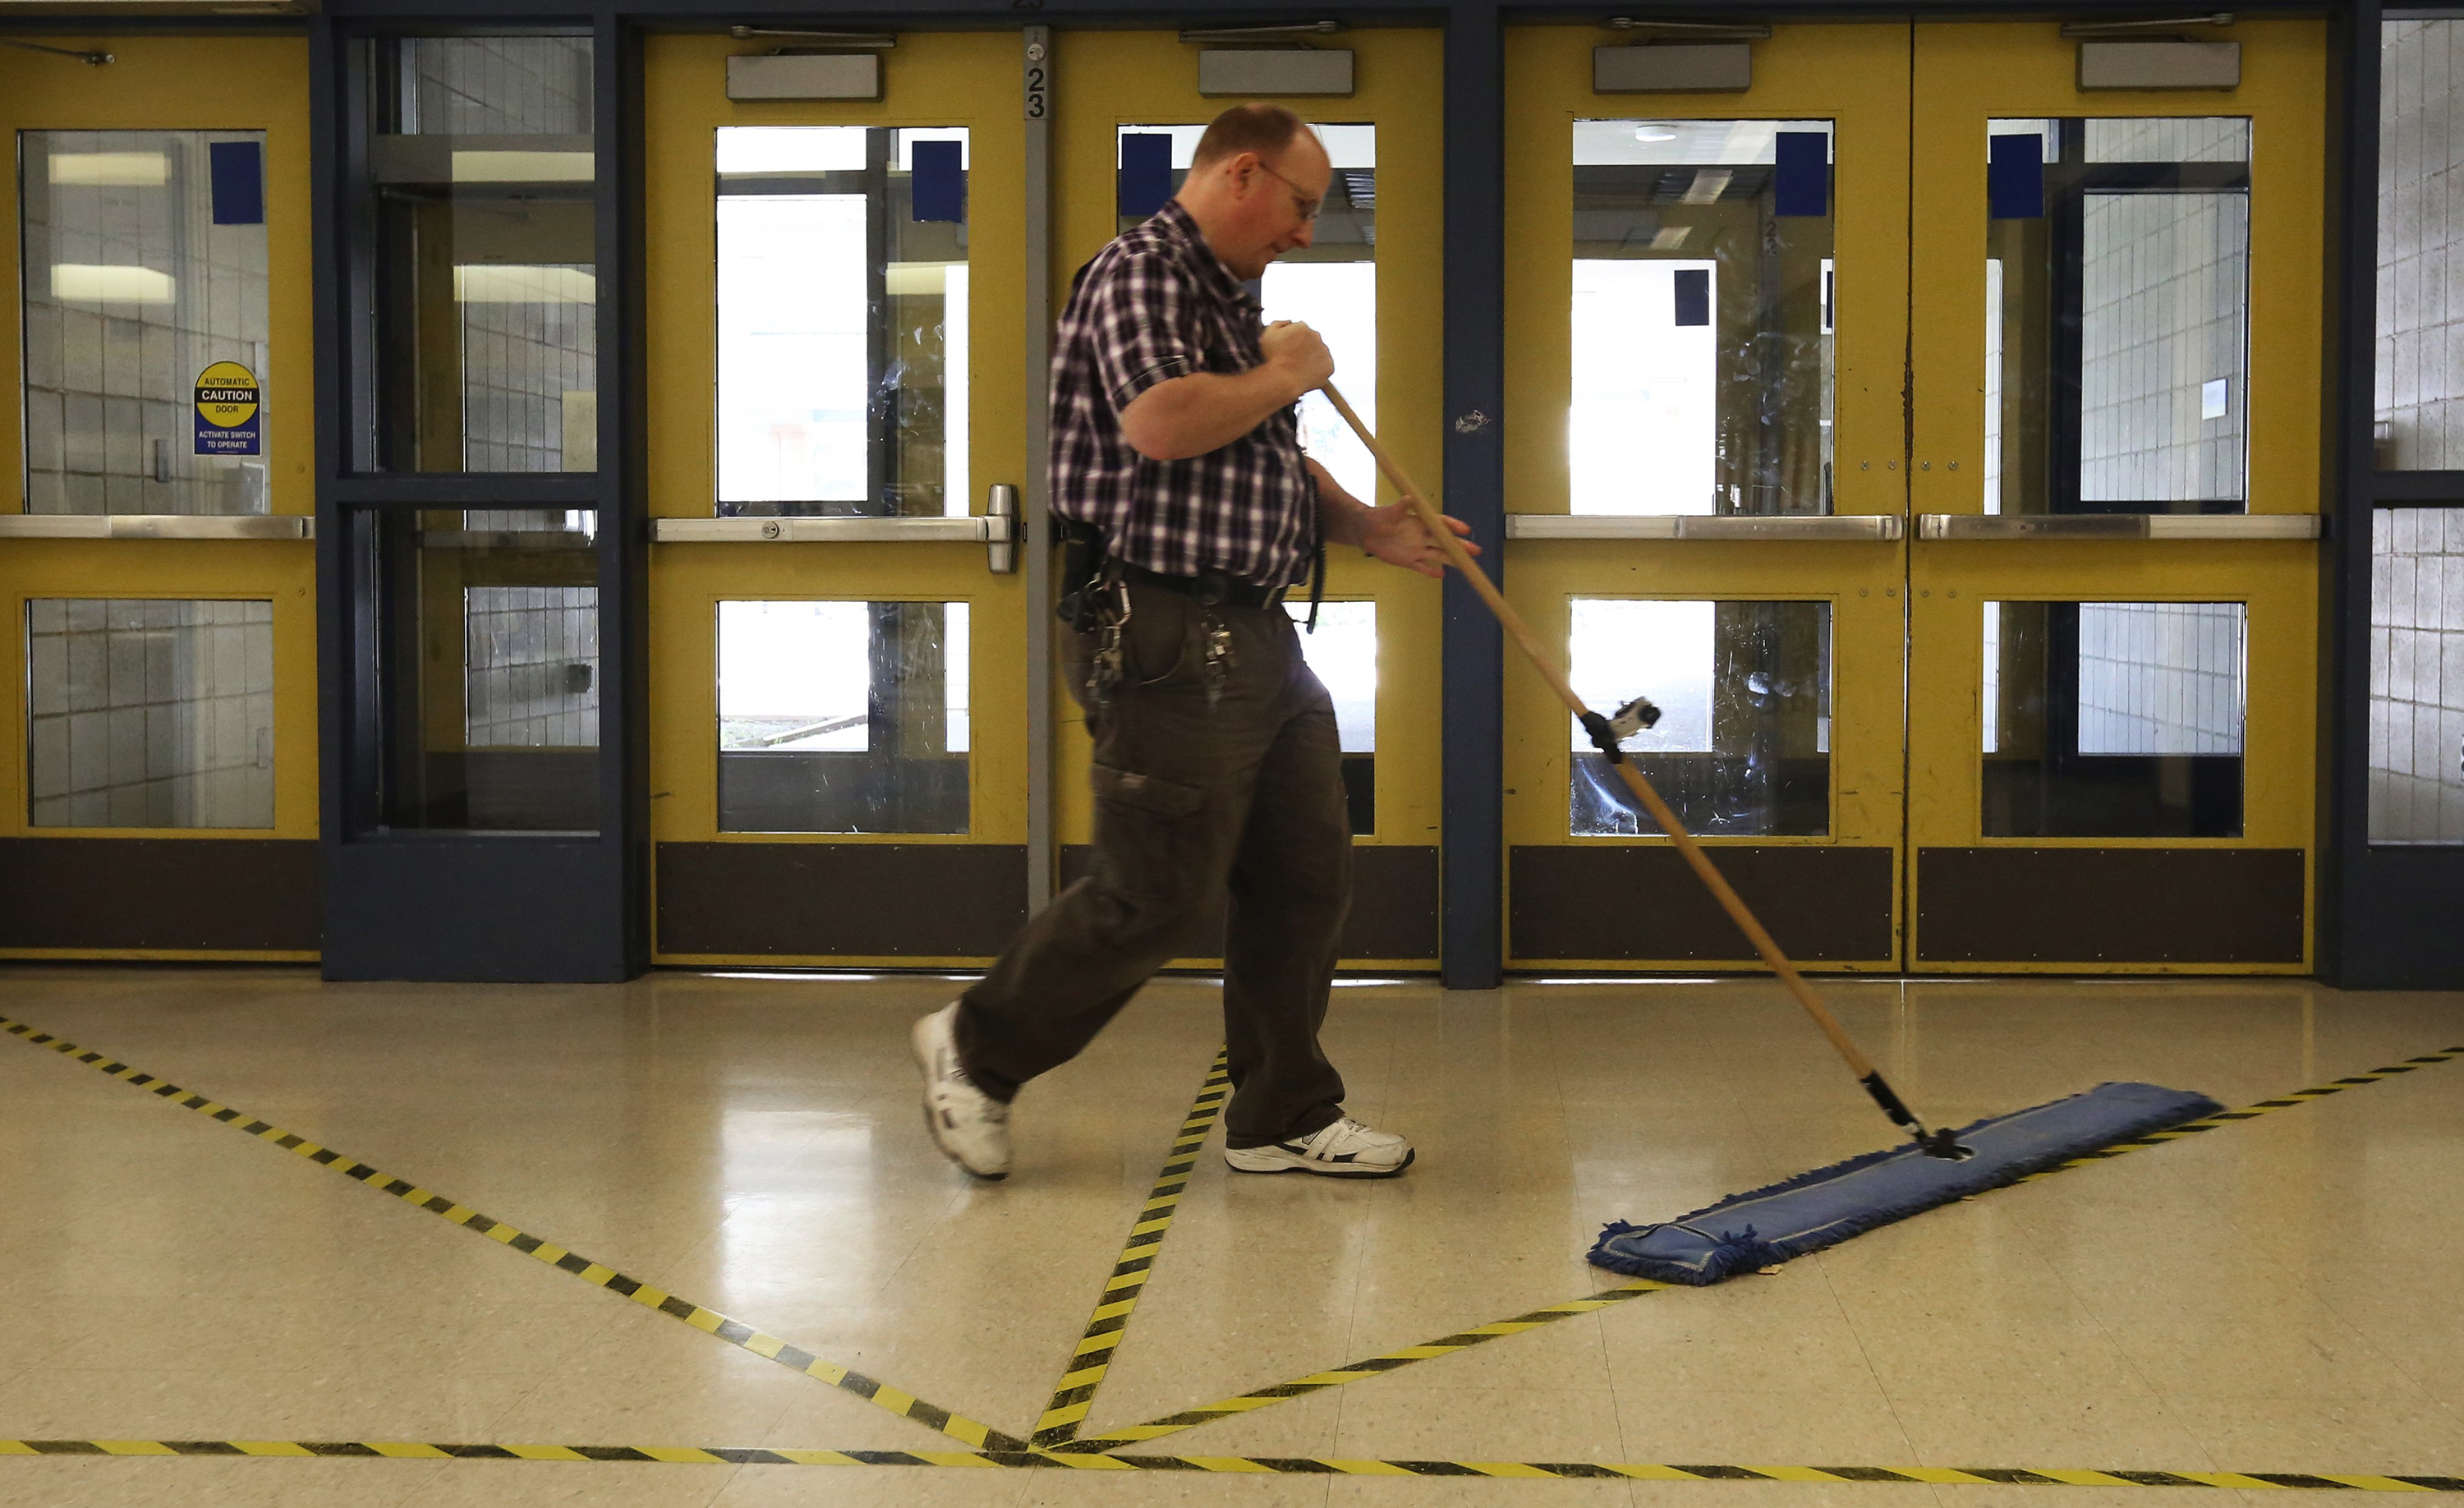 Newsela | Top contender for Janitor of the Year award ...